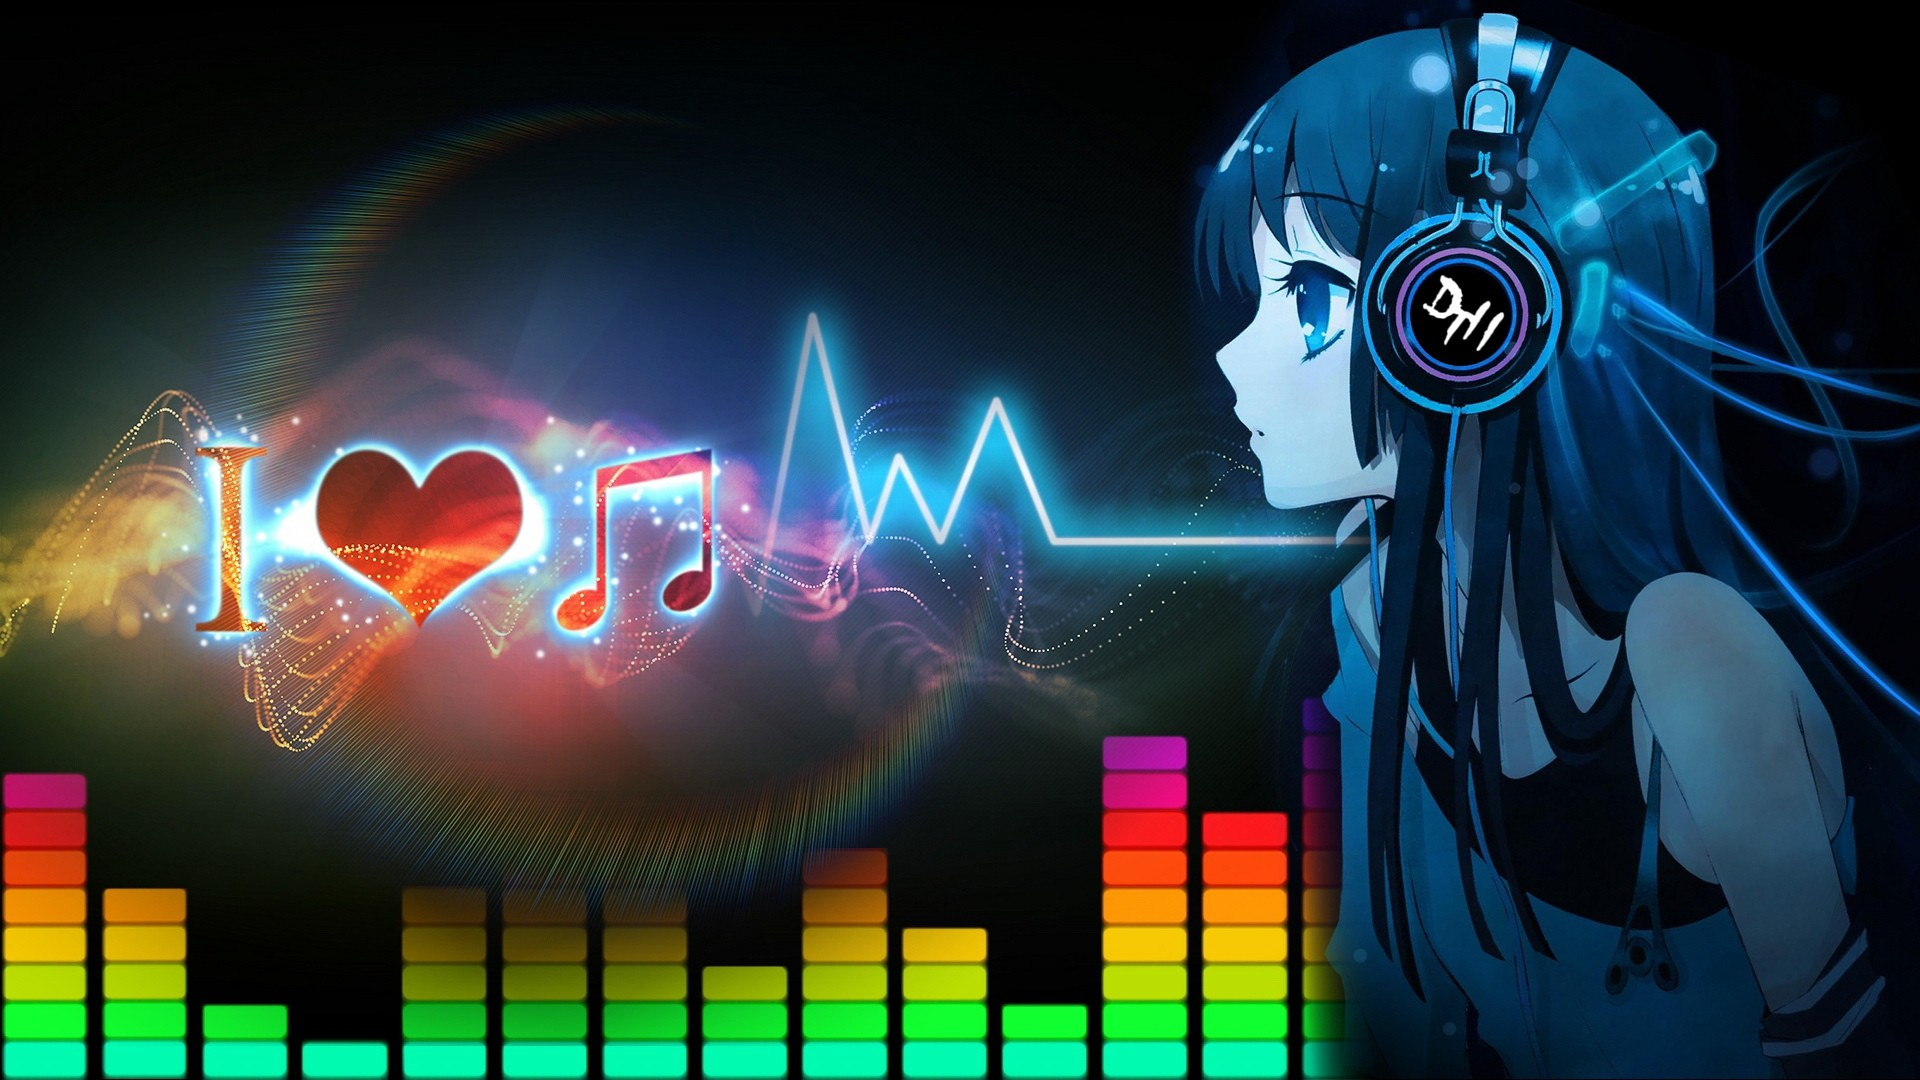 Anime Music Wallpaper - WallpaperSafari